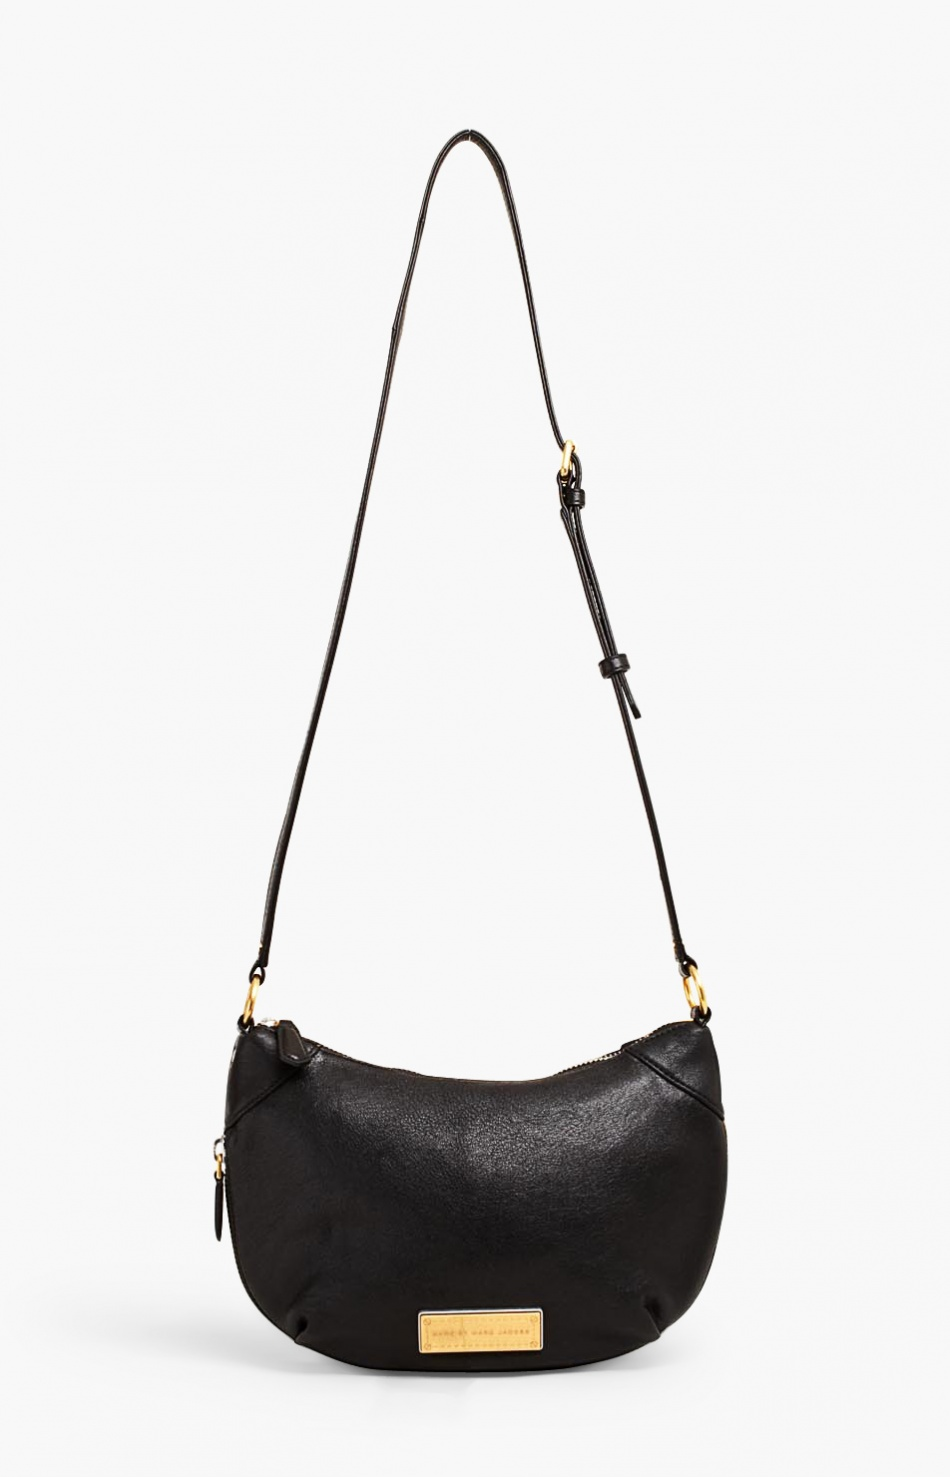 Tasche-Marc-By-Marc-Jacobs-Black-X-Body-Bag